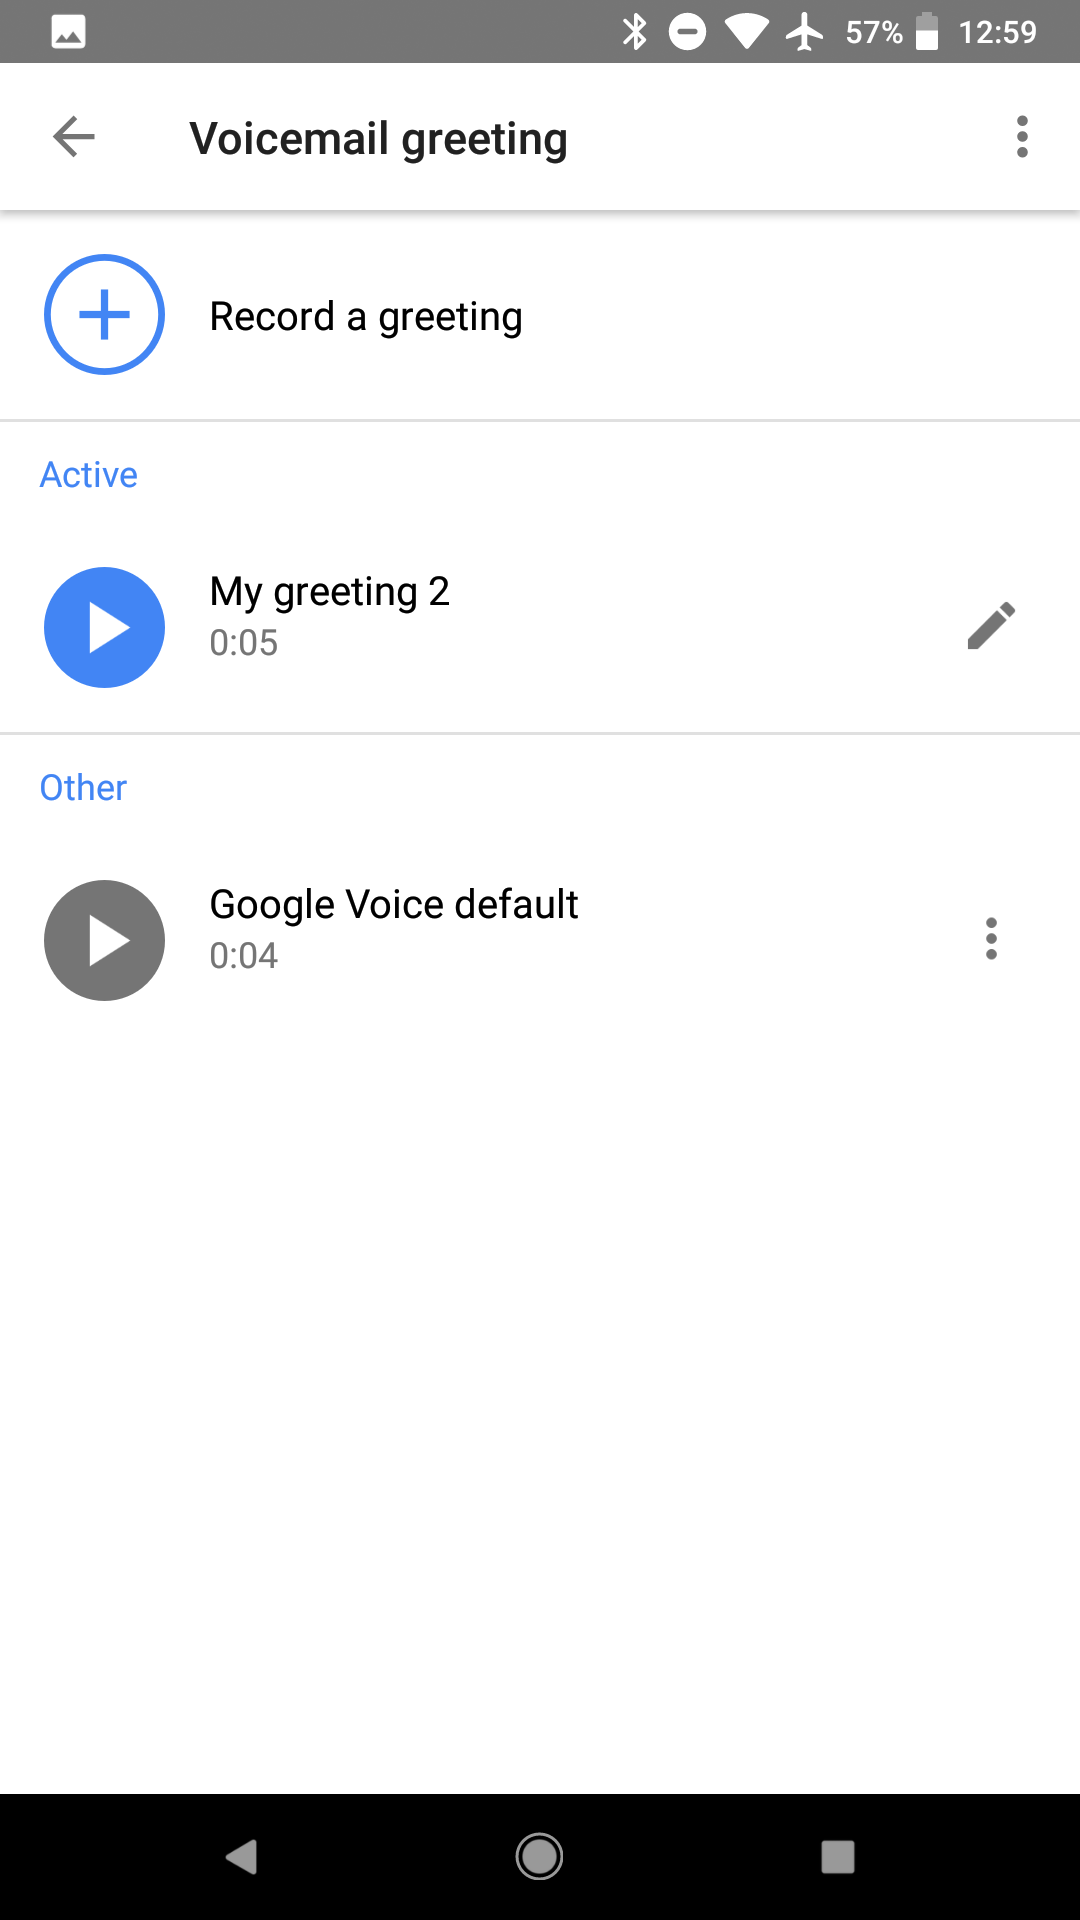 Google voice now lets you record voicemail greetings on android and google voice 5 10 voicemail 4 m4hsunfo